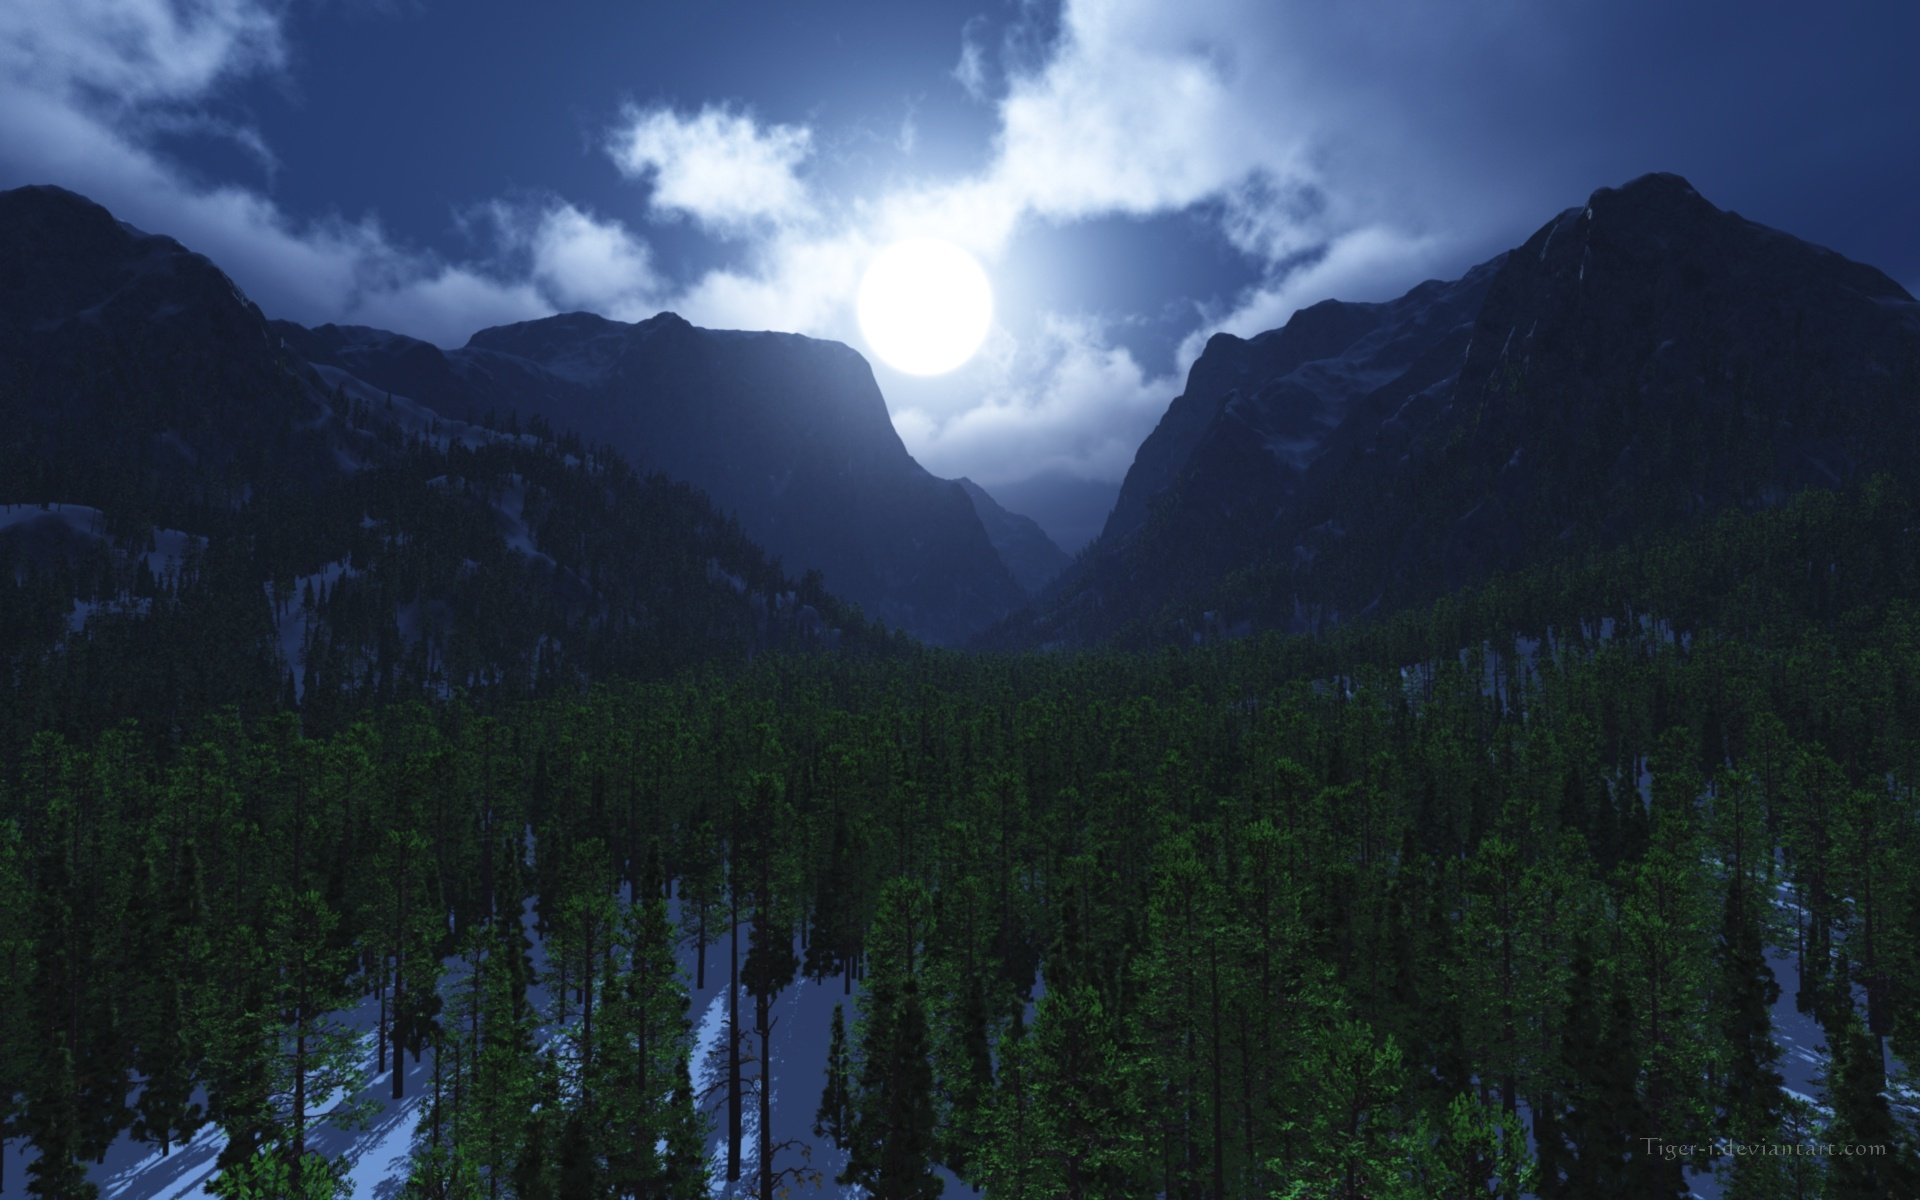 Valley moonlight